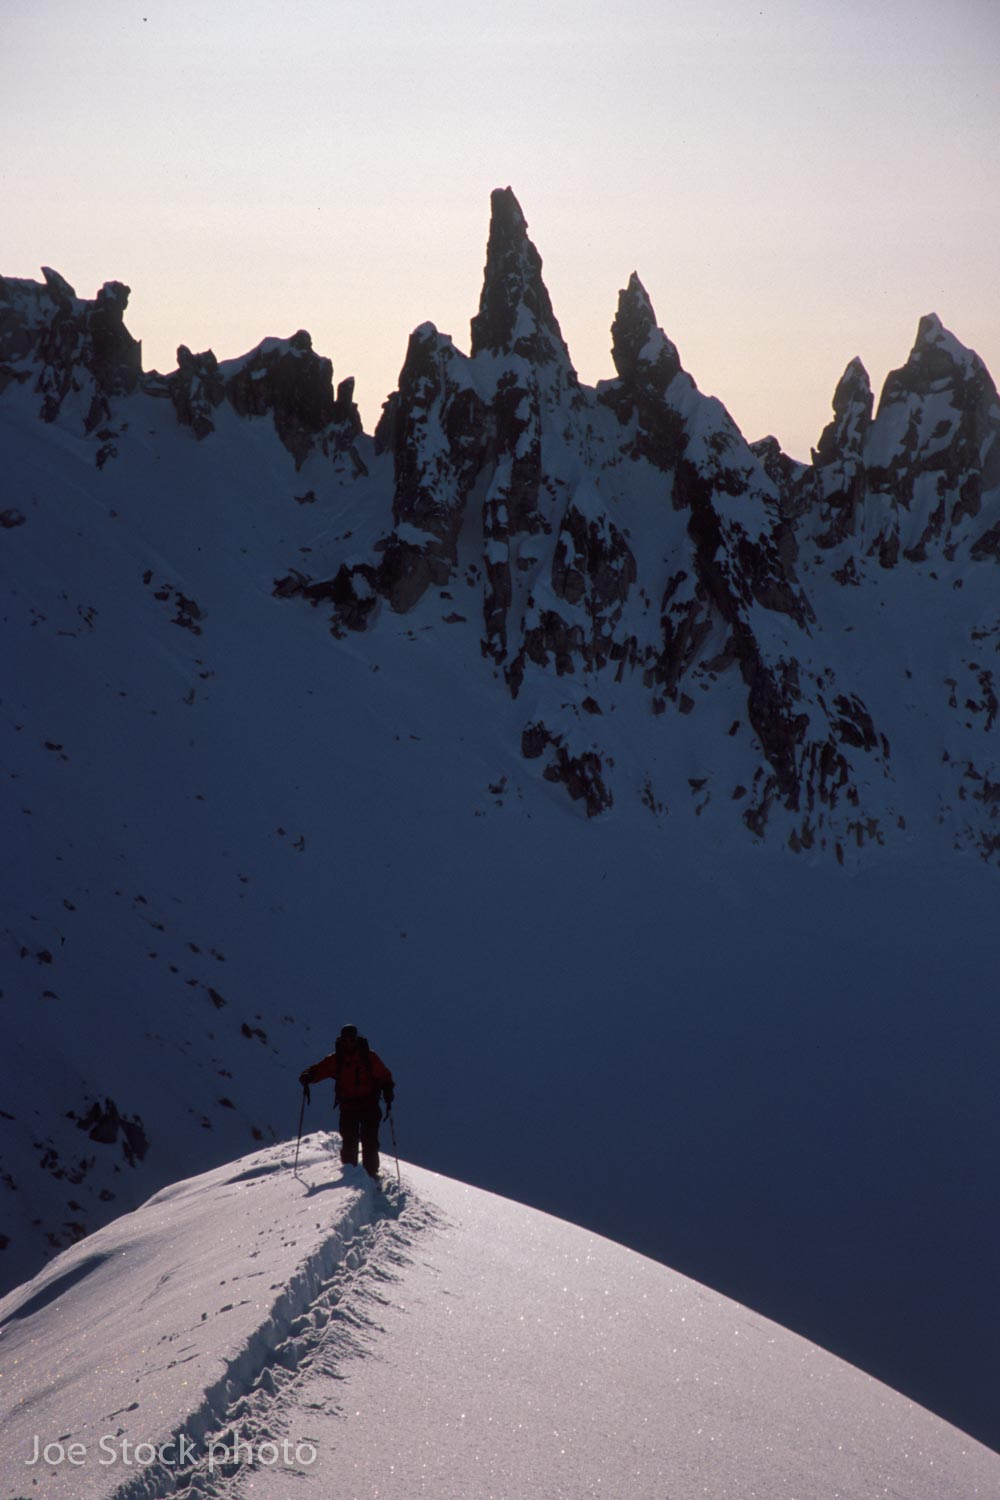 We kept skiing after the Immortal Technique Couloir.Until we had logged 10,000 vertical feet by 10 PM.